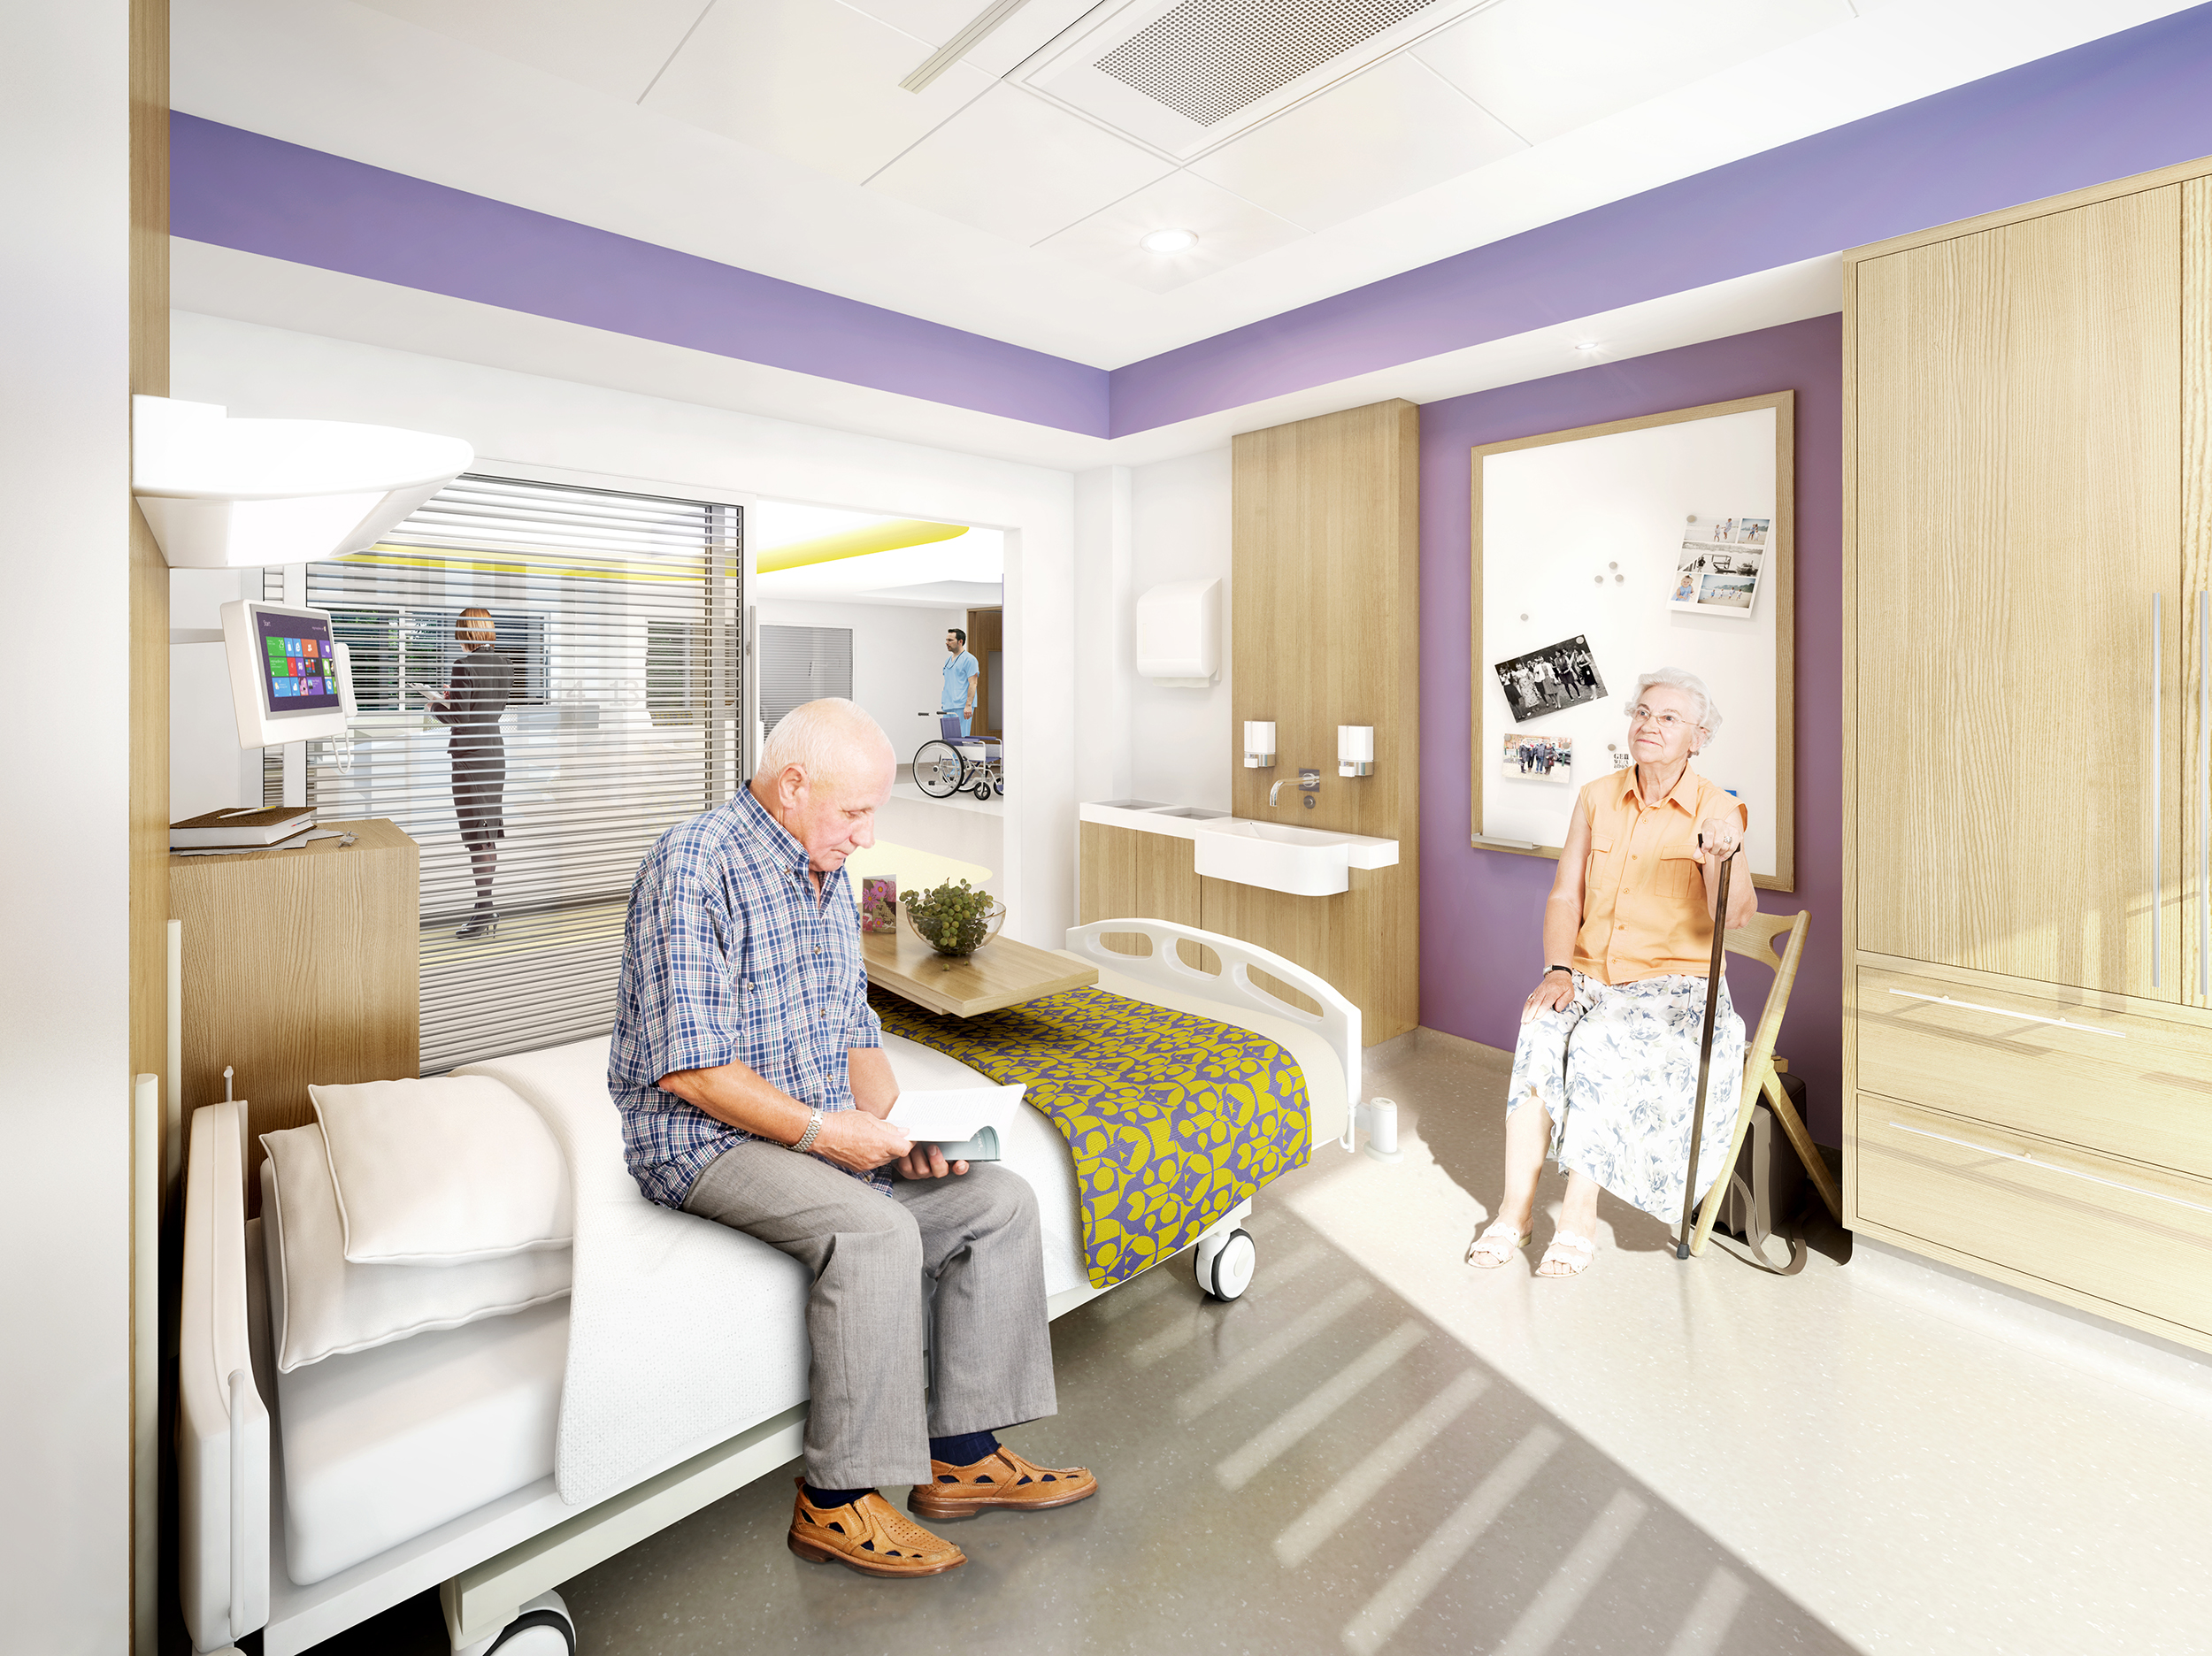 CGI-hospital-healthcare-bedroom-ward.jpg